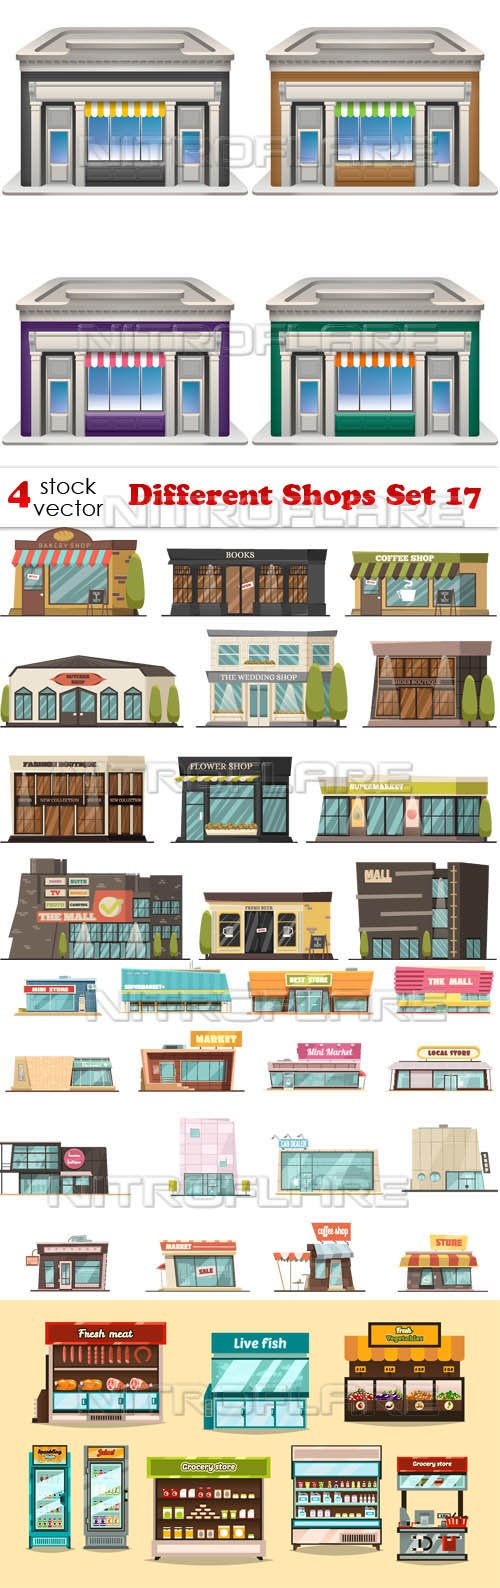 Vectors - Different Shops Set 17